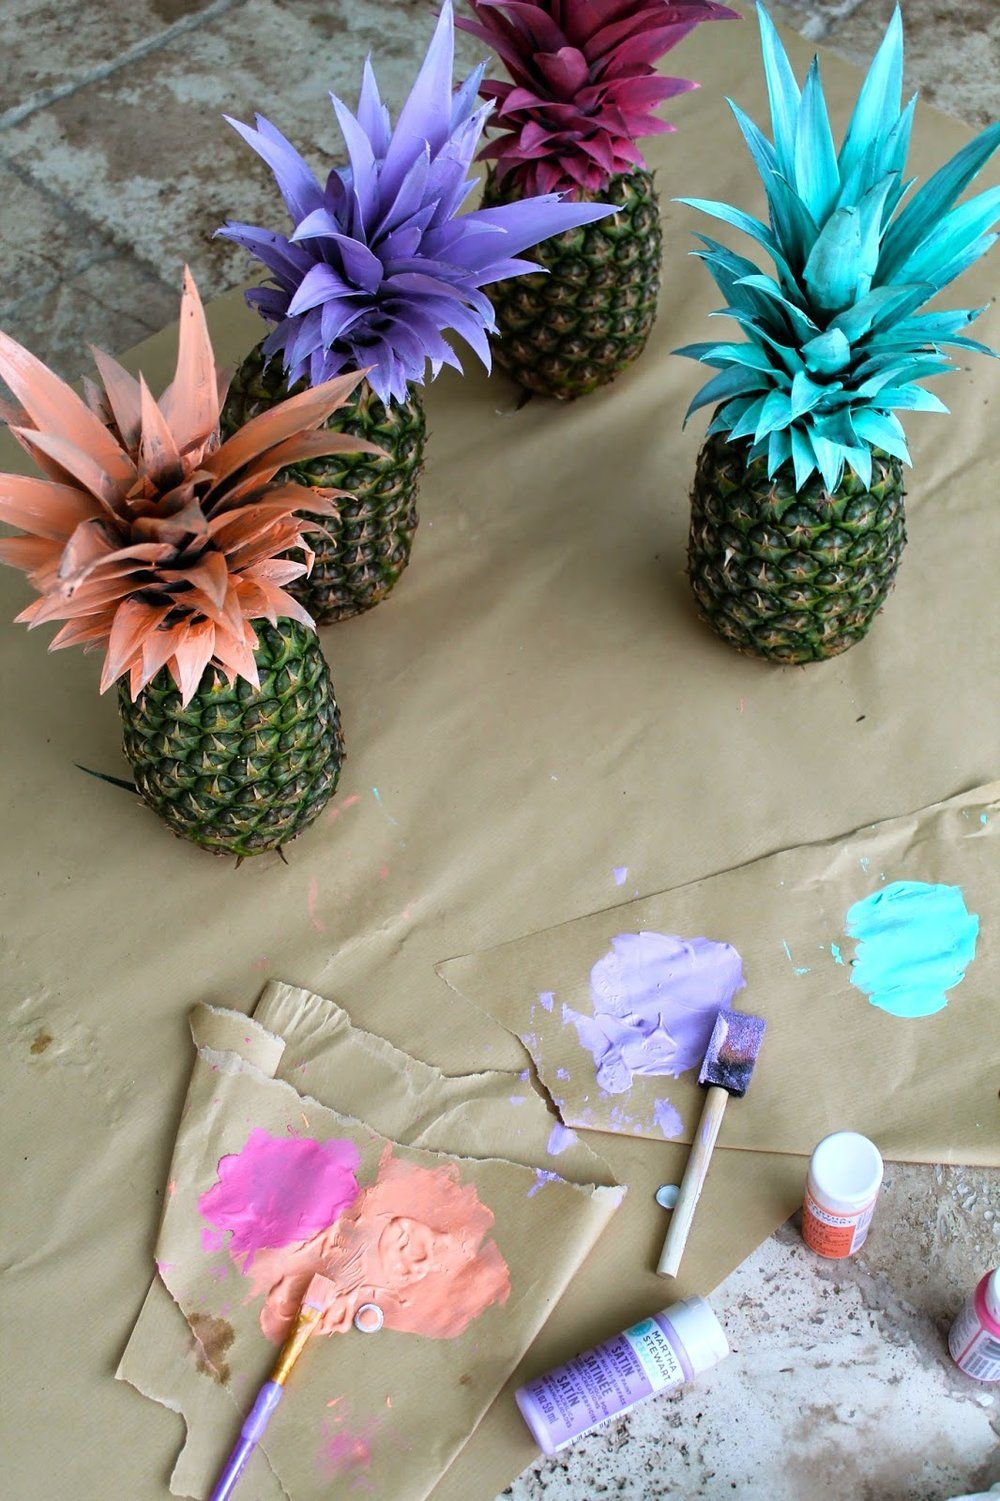 19 Tropical Party Ideas That Are Beyond Genius #tropicalbirthdayparty